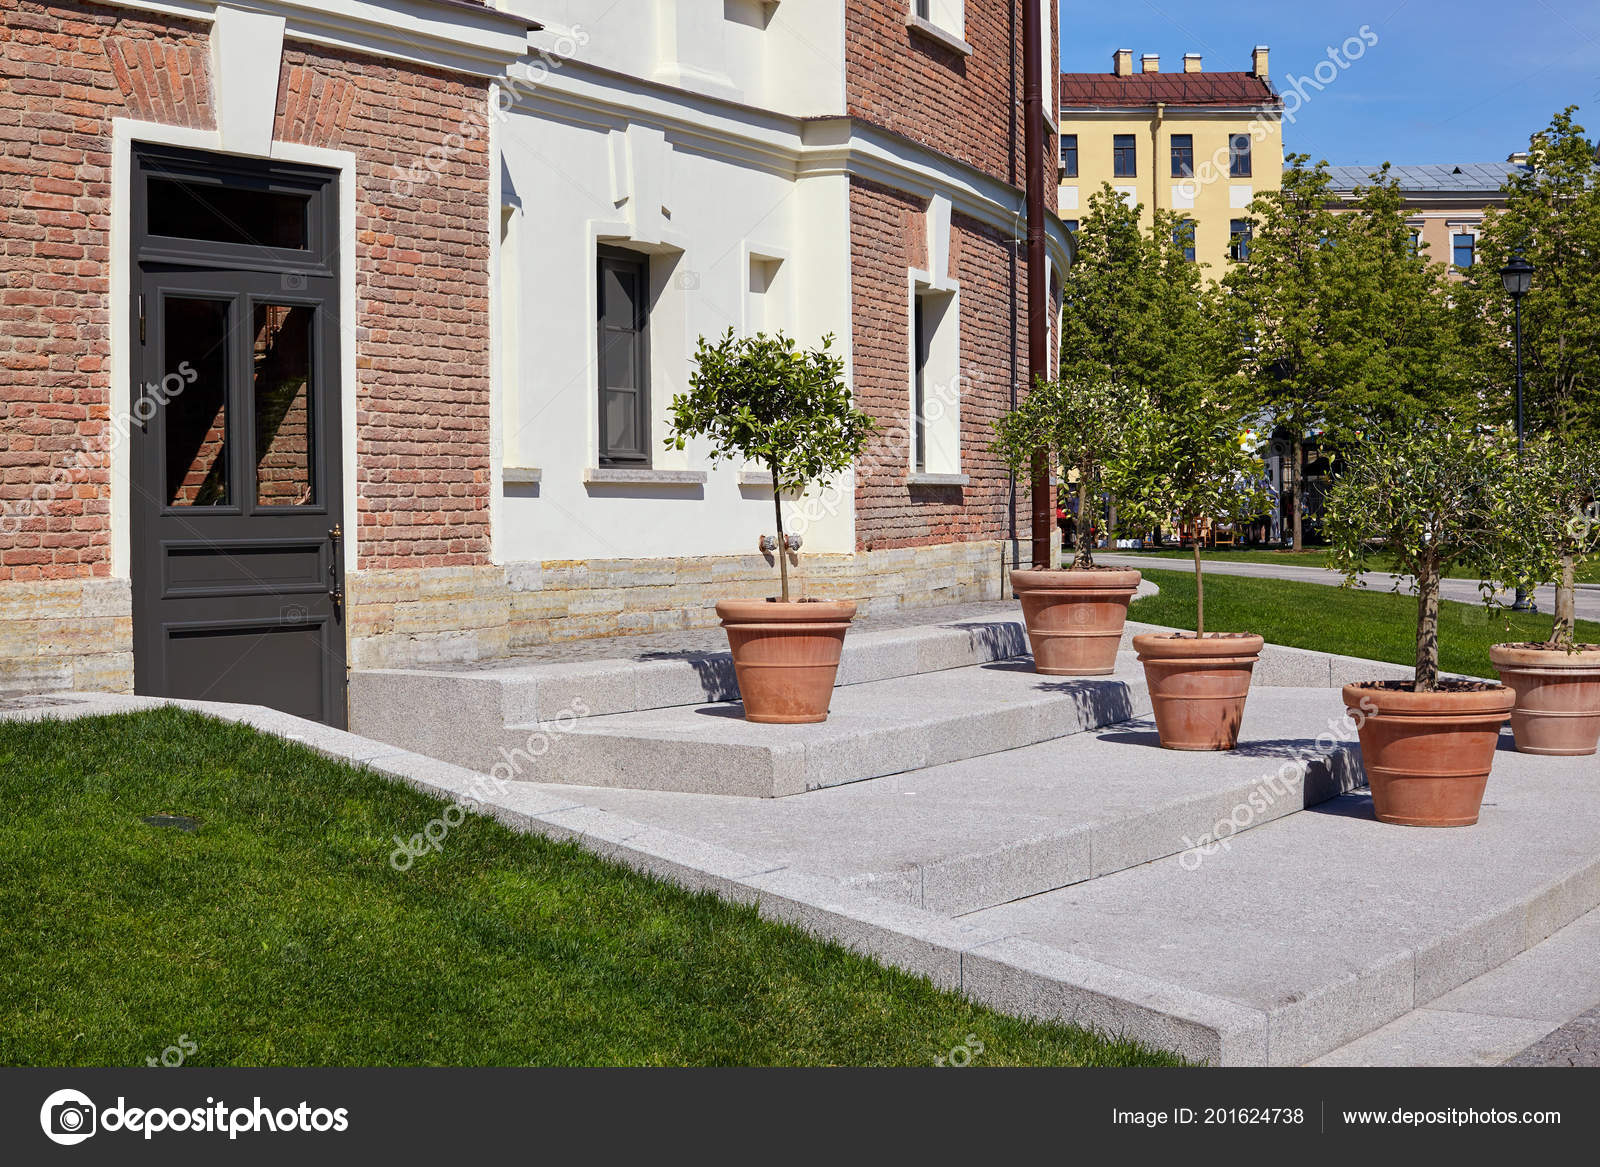 An Old Brick House With Windows And Potted Flowers In Front Of The Victorian Style Entrance Against A Blue Sky Green Lawn Photo By Accent Pmail